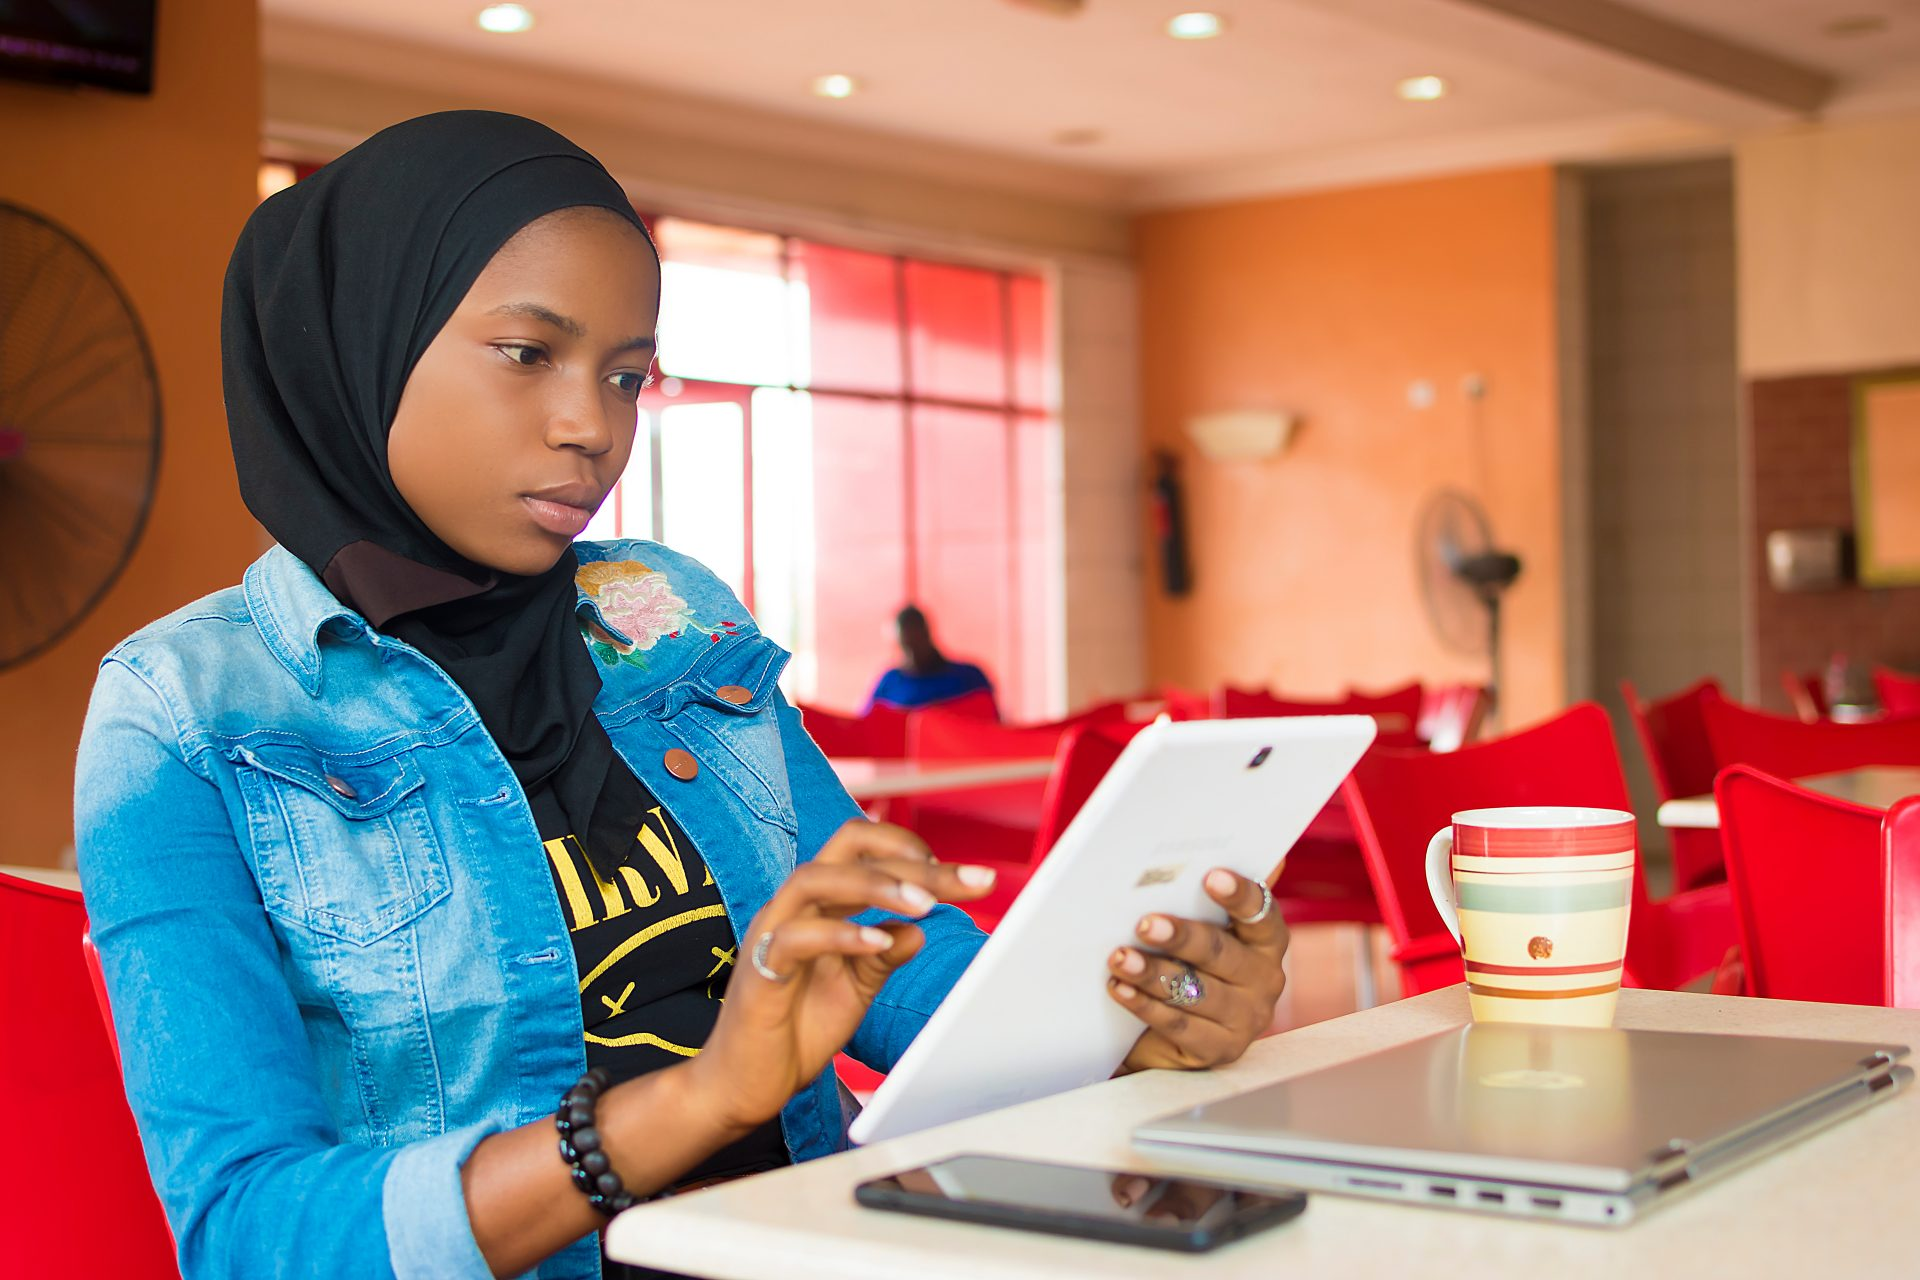 Nigerian muslim girl accessing tablet computer